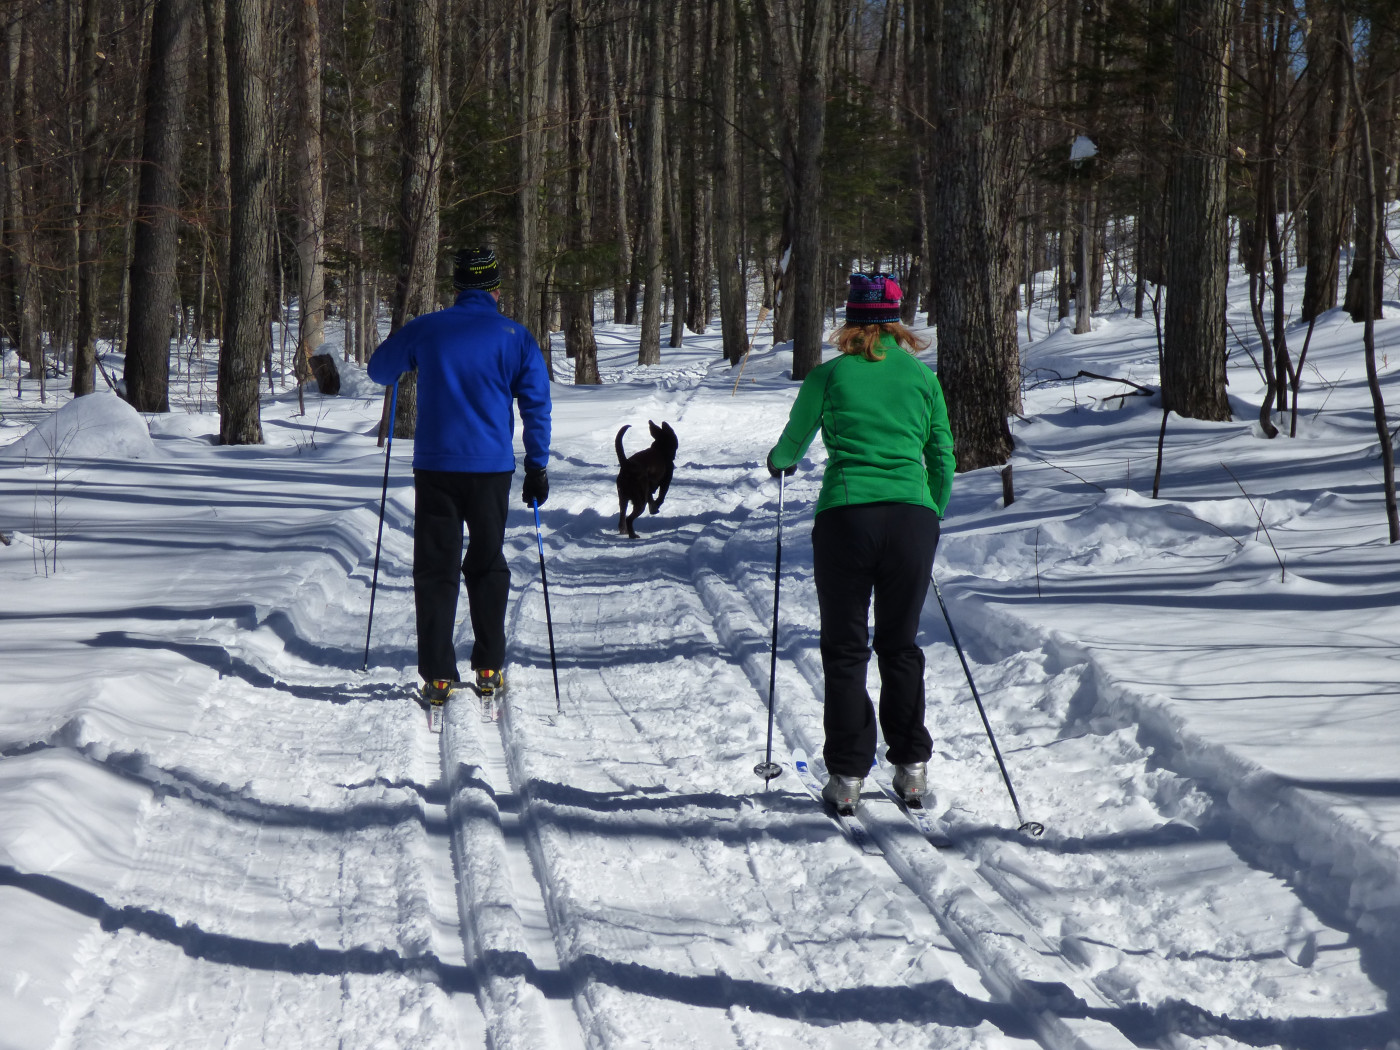 Skiers on groomed, tracked cross-country trails